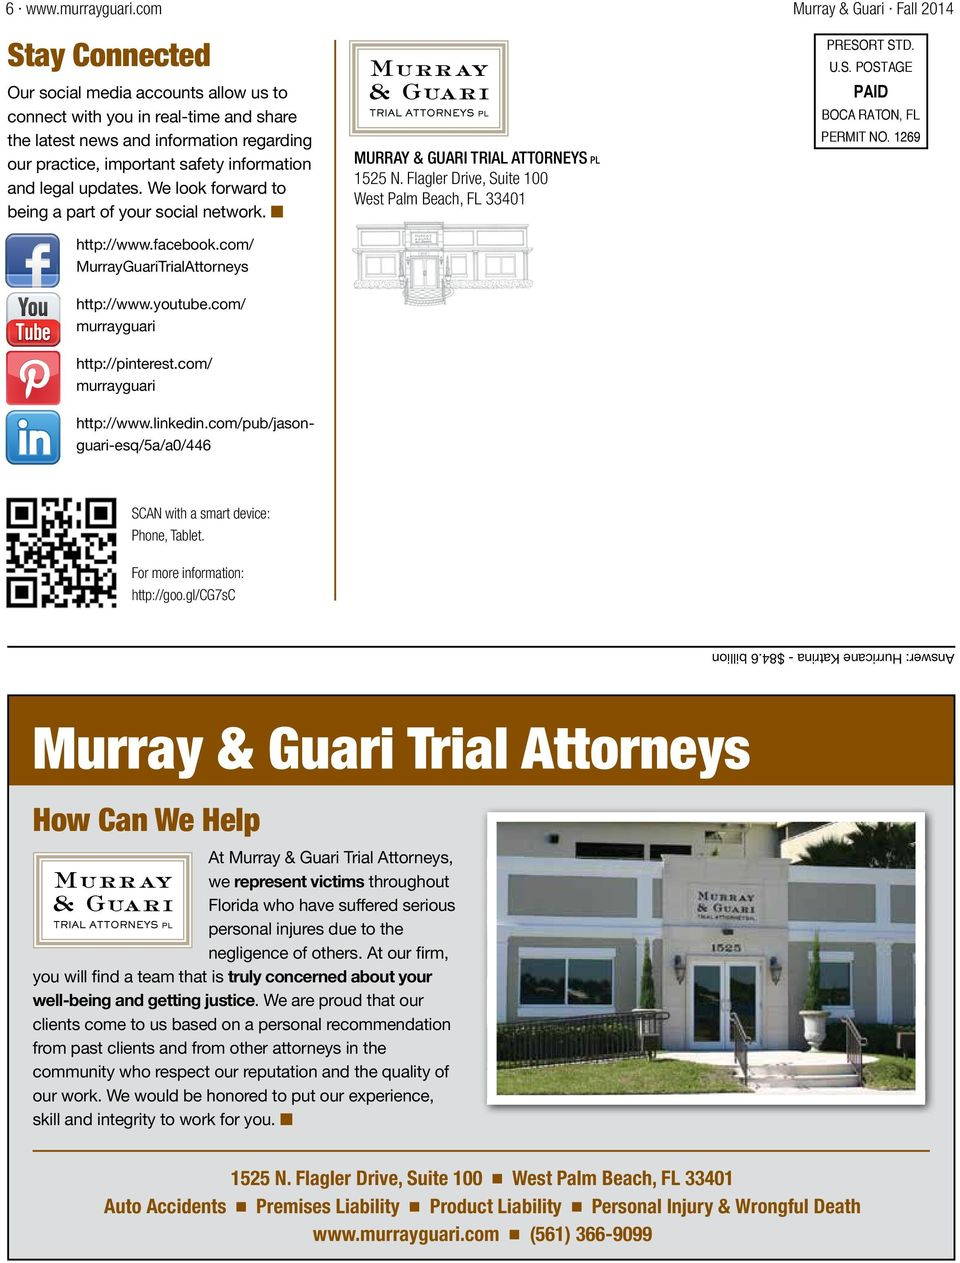 information and legal updates. We look forward to being a part of your social network. n http://www.facebook.com/ MurrayGuariTrialAttorneys http://www.youtube.com/ murrayguari http://pinterest.